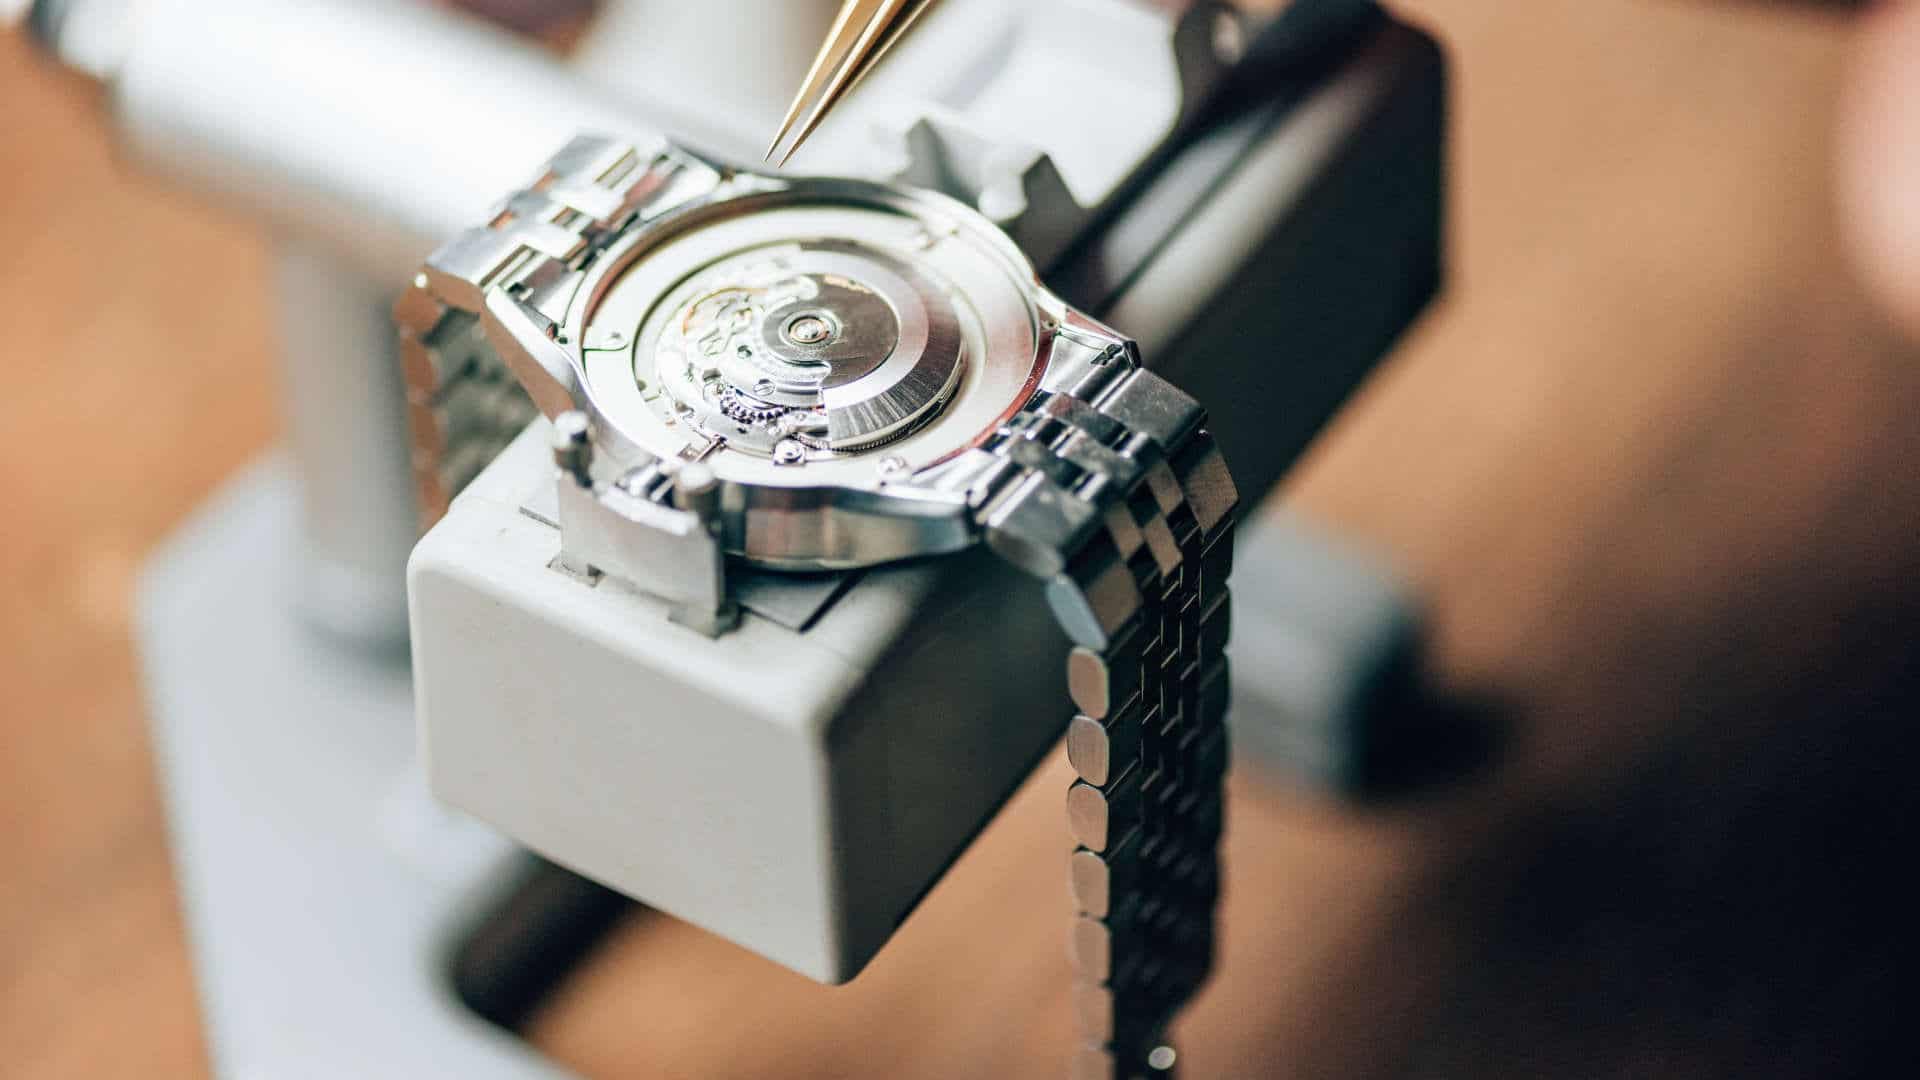 High end watch being serviced by Atoz watchmakers for customer in Edinburgh